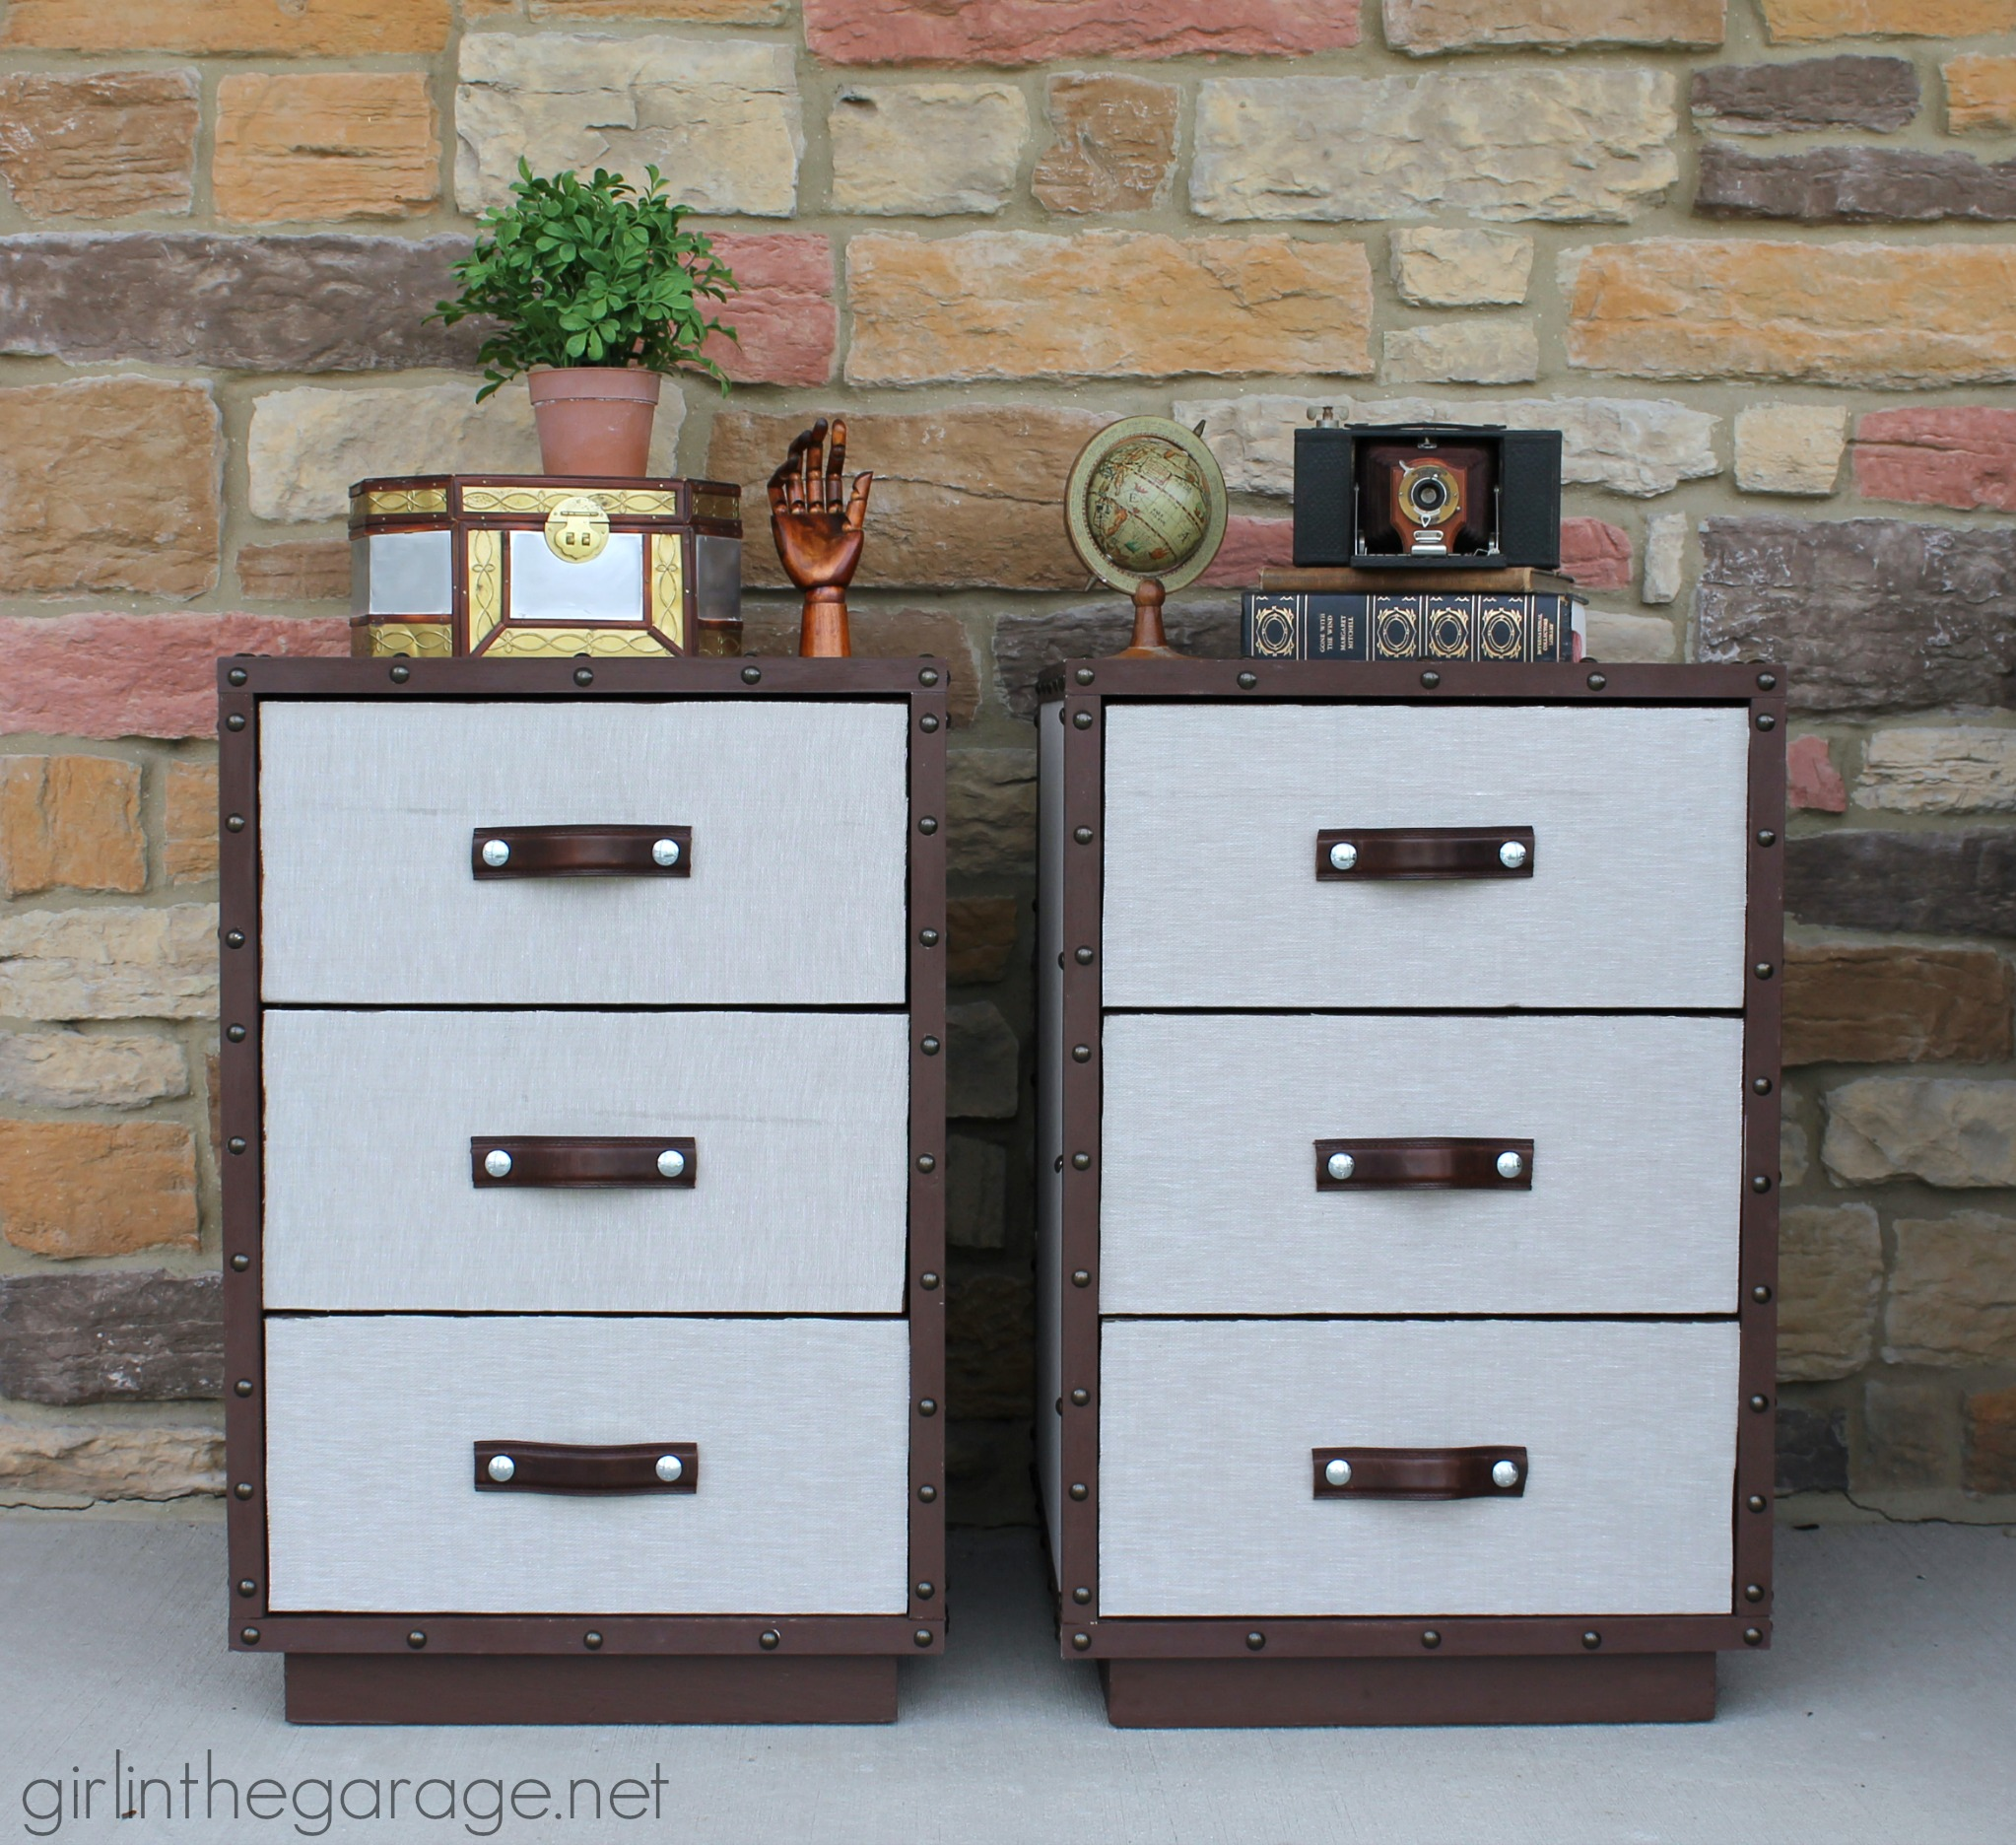 Ordinaire Two Nightstands Are Transformed Into Pottery Barn Inspired DIY Trunk  Bedside Tables For Themed Furniture Makeover ...